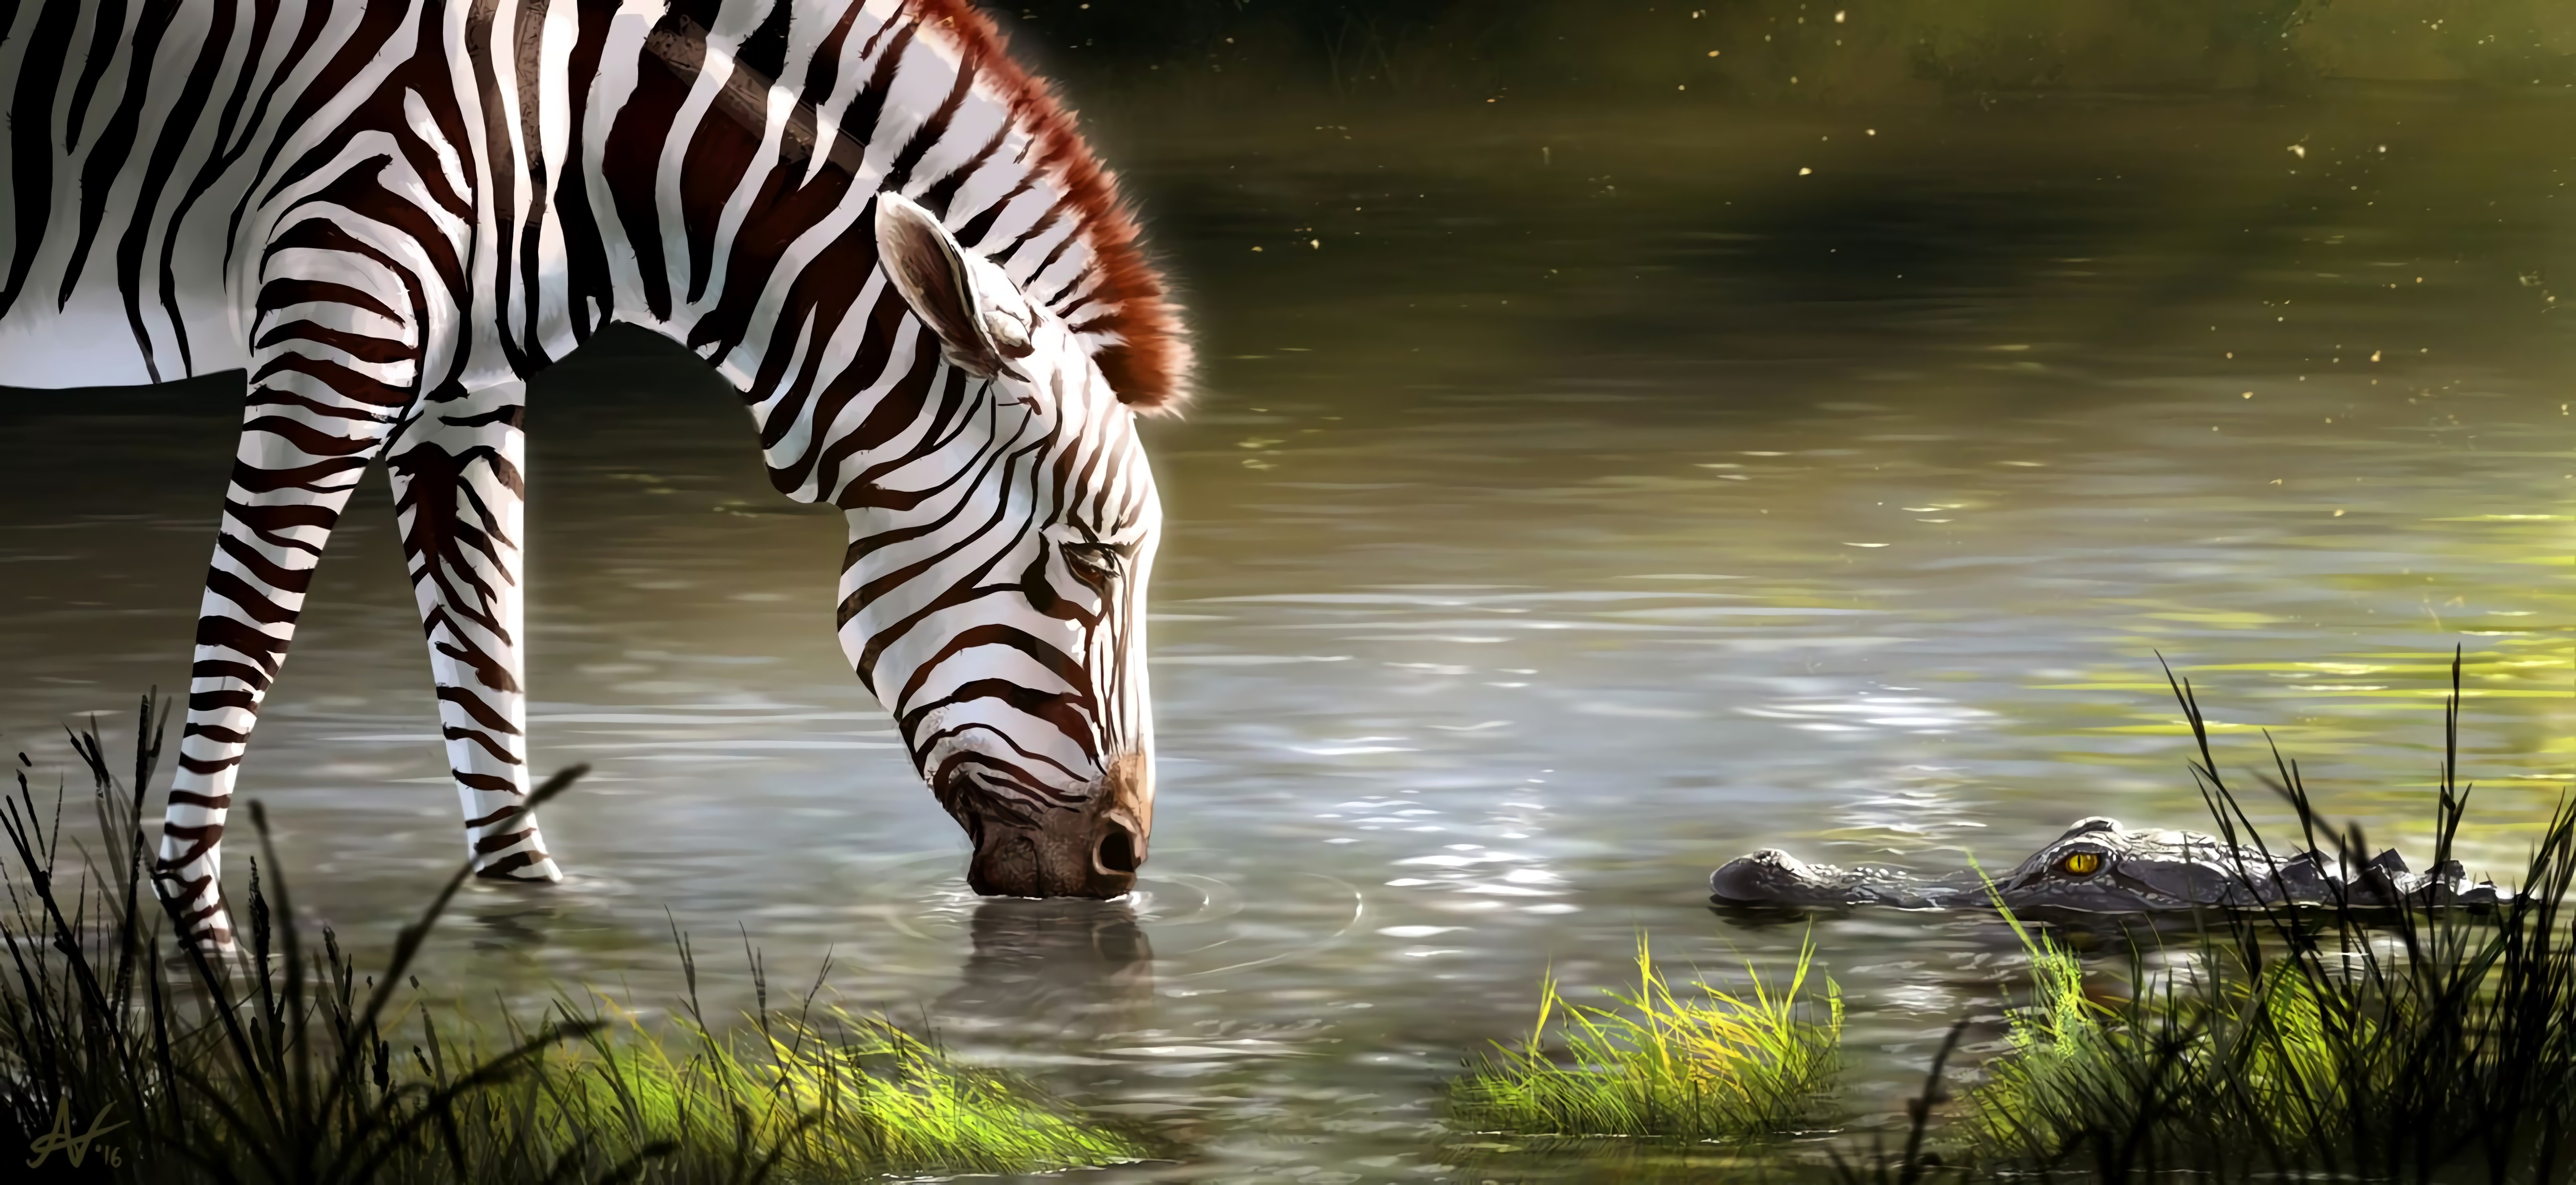 122687 download wallpaper Zebra, Lake, Art, Animal, Wildlife screensavers and pictures for free